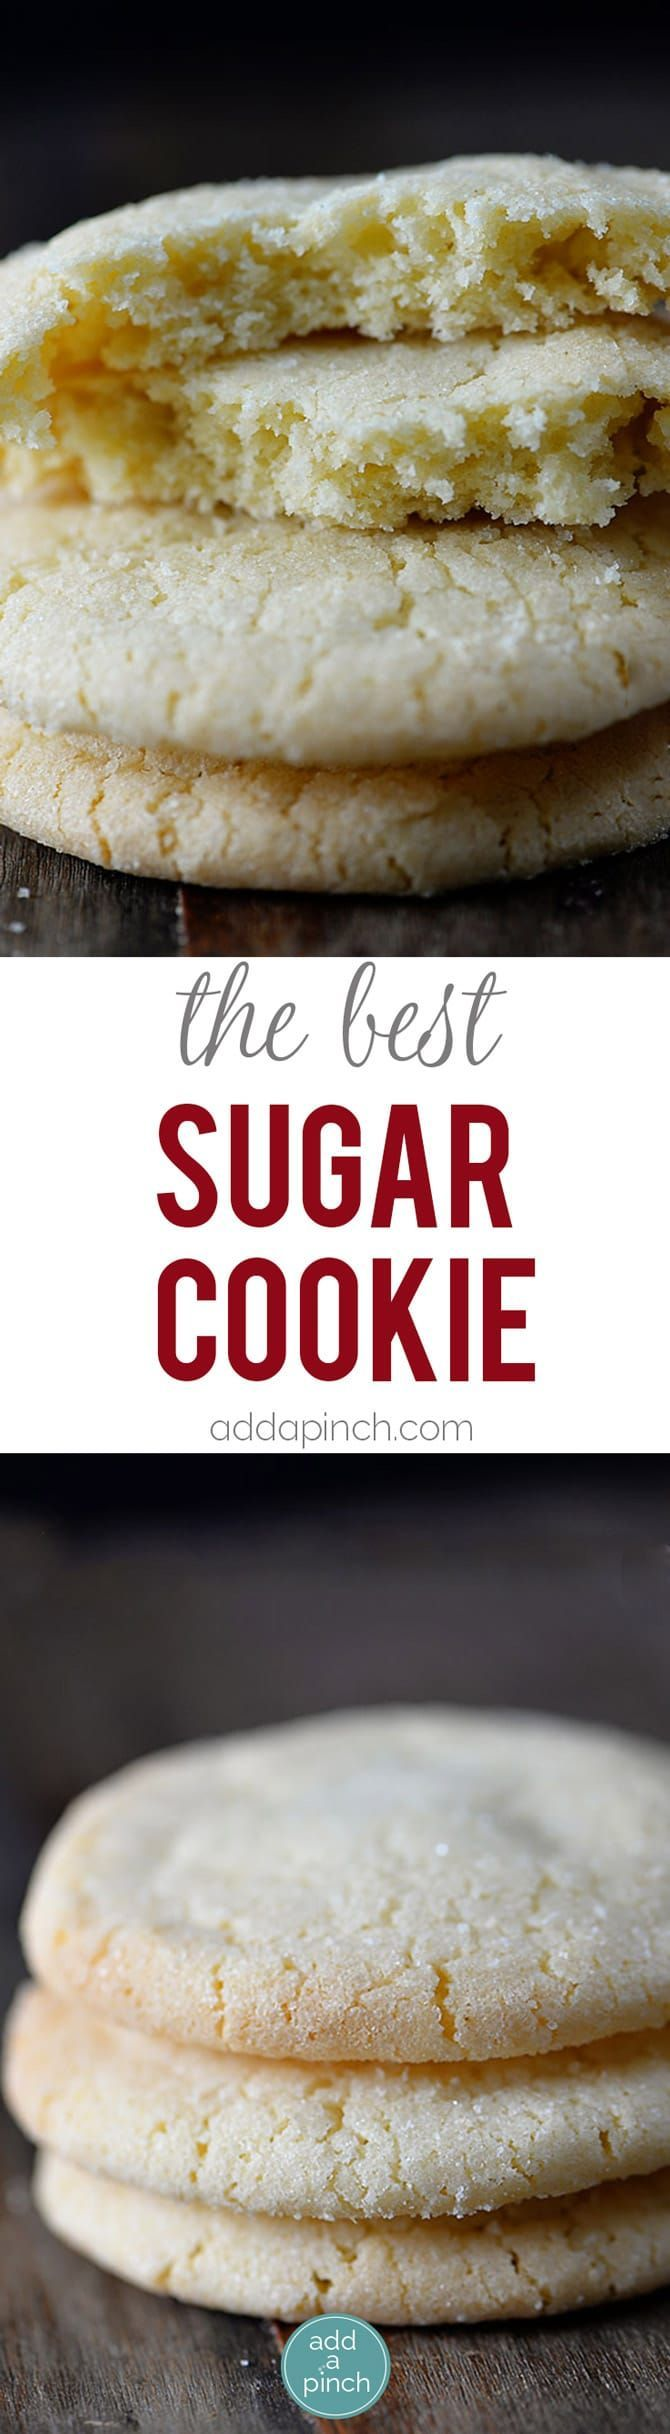 The BEST Chewy Sugar Cookies Recipe - Absolutely the BEST sugar cookie recipe I've ever tasted! These sugar cookies are soft, chewy and produce a flavorful bakery style soft sugar cookie! Quick and easy to make, this sugar cookie recipe makes cookies that turn out perfectly every single time!